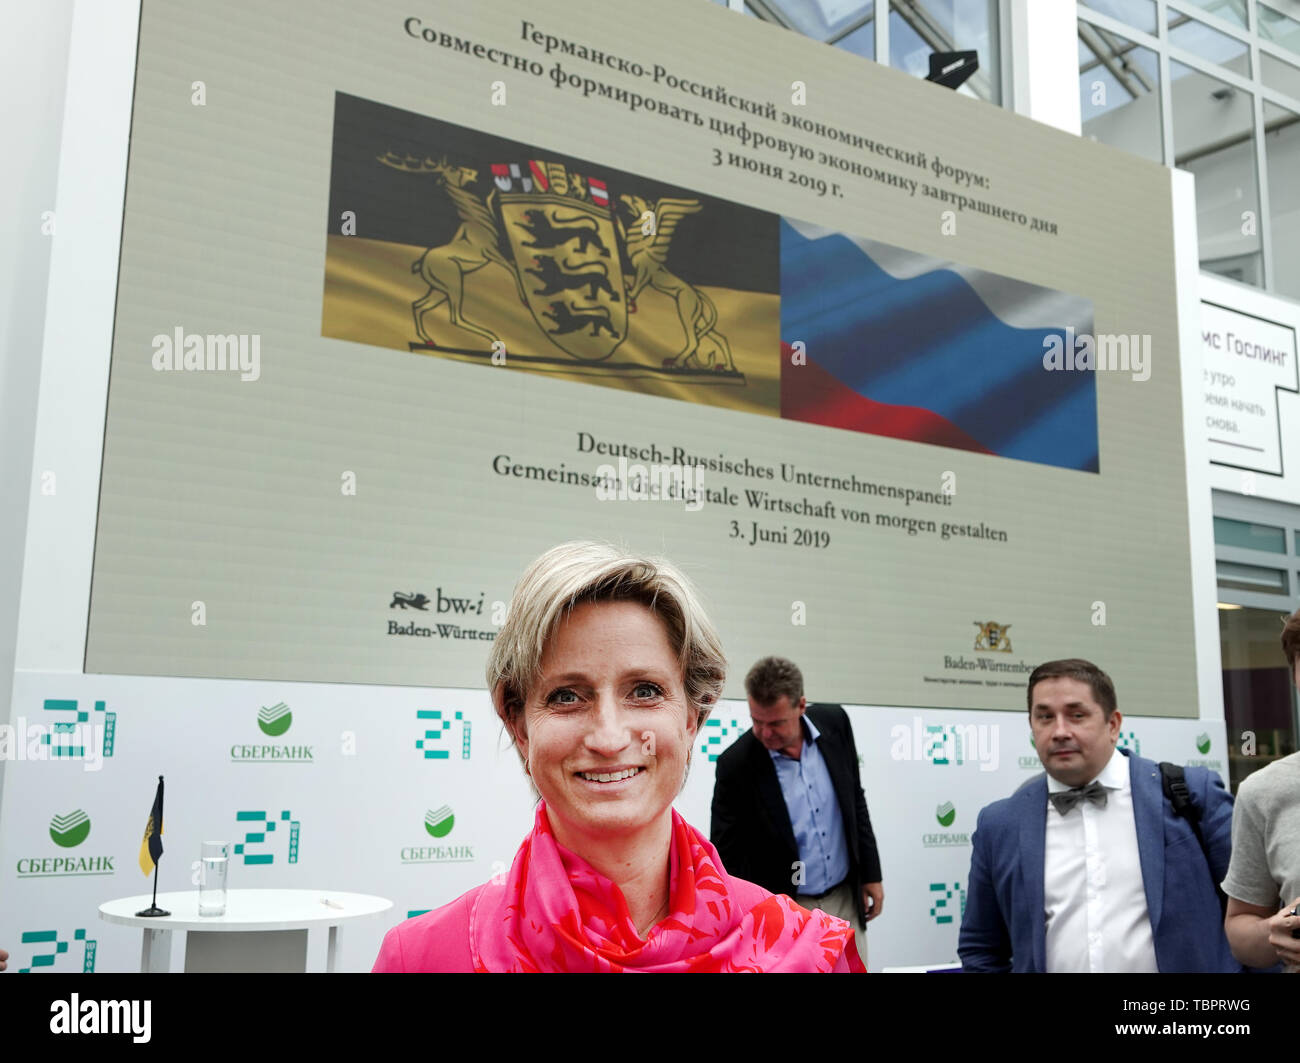 03 June 2019, Russia, Moskau: Nicole Hoffmeister-Kraut (CDU), Baden-Württemberg's Minister of Economic Affairs, starts her trip to Russia with the logo for a German-Russian company panel at School 21, a school for IT programmers at the Russian Sberbank. Photo: Ulf Mauder/dpa - Stock Image